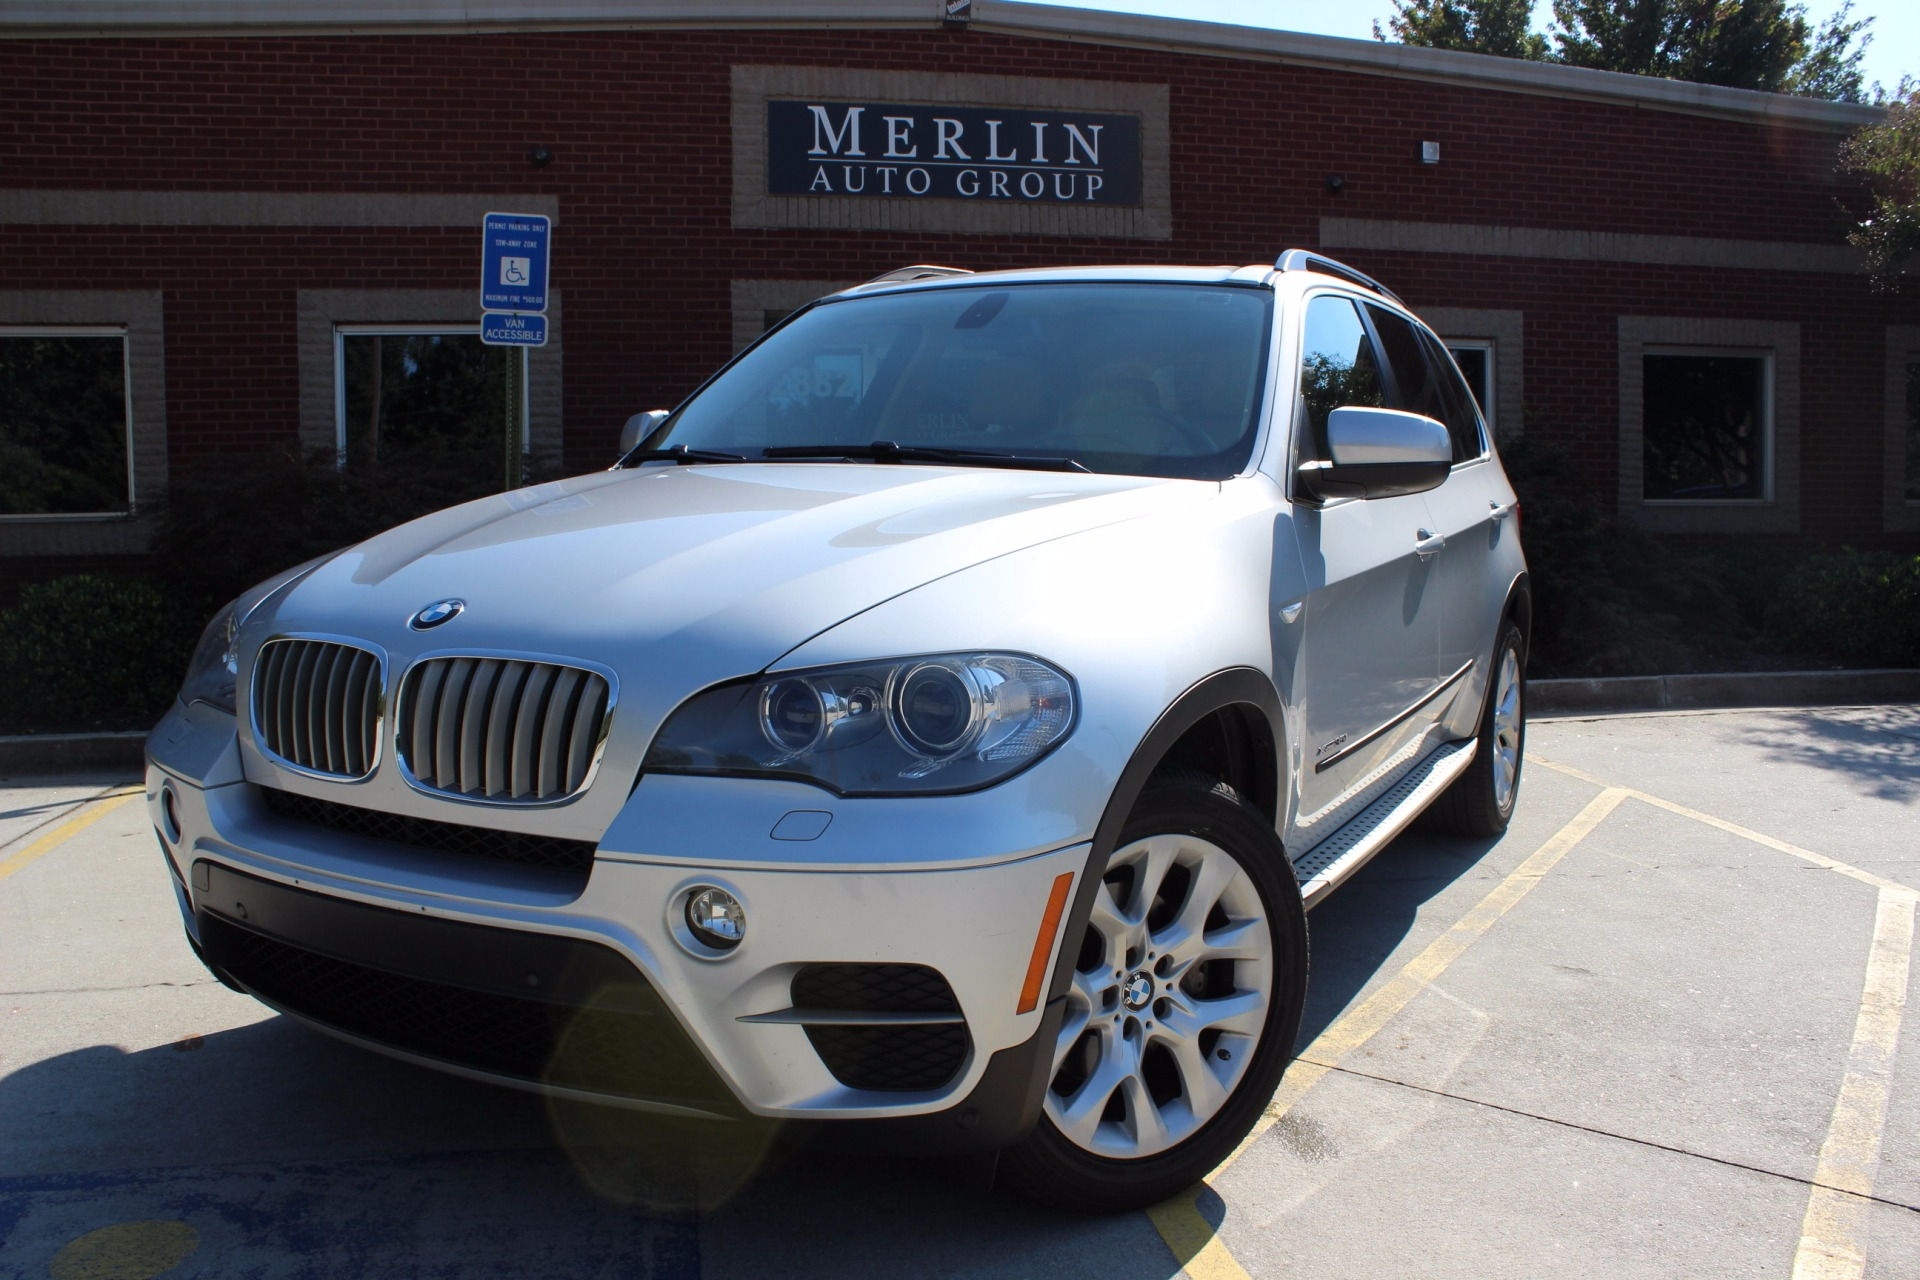 used 2013 bmw x5 stock p3791 ultra luxury car from merlin auto group. Black Bedroom Furniture Sets. Home Design Ideas